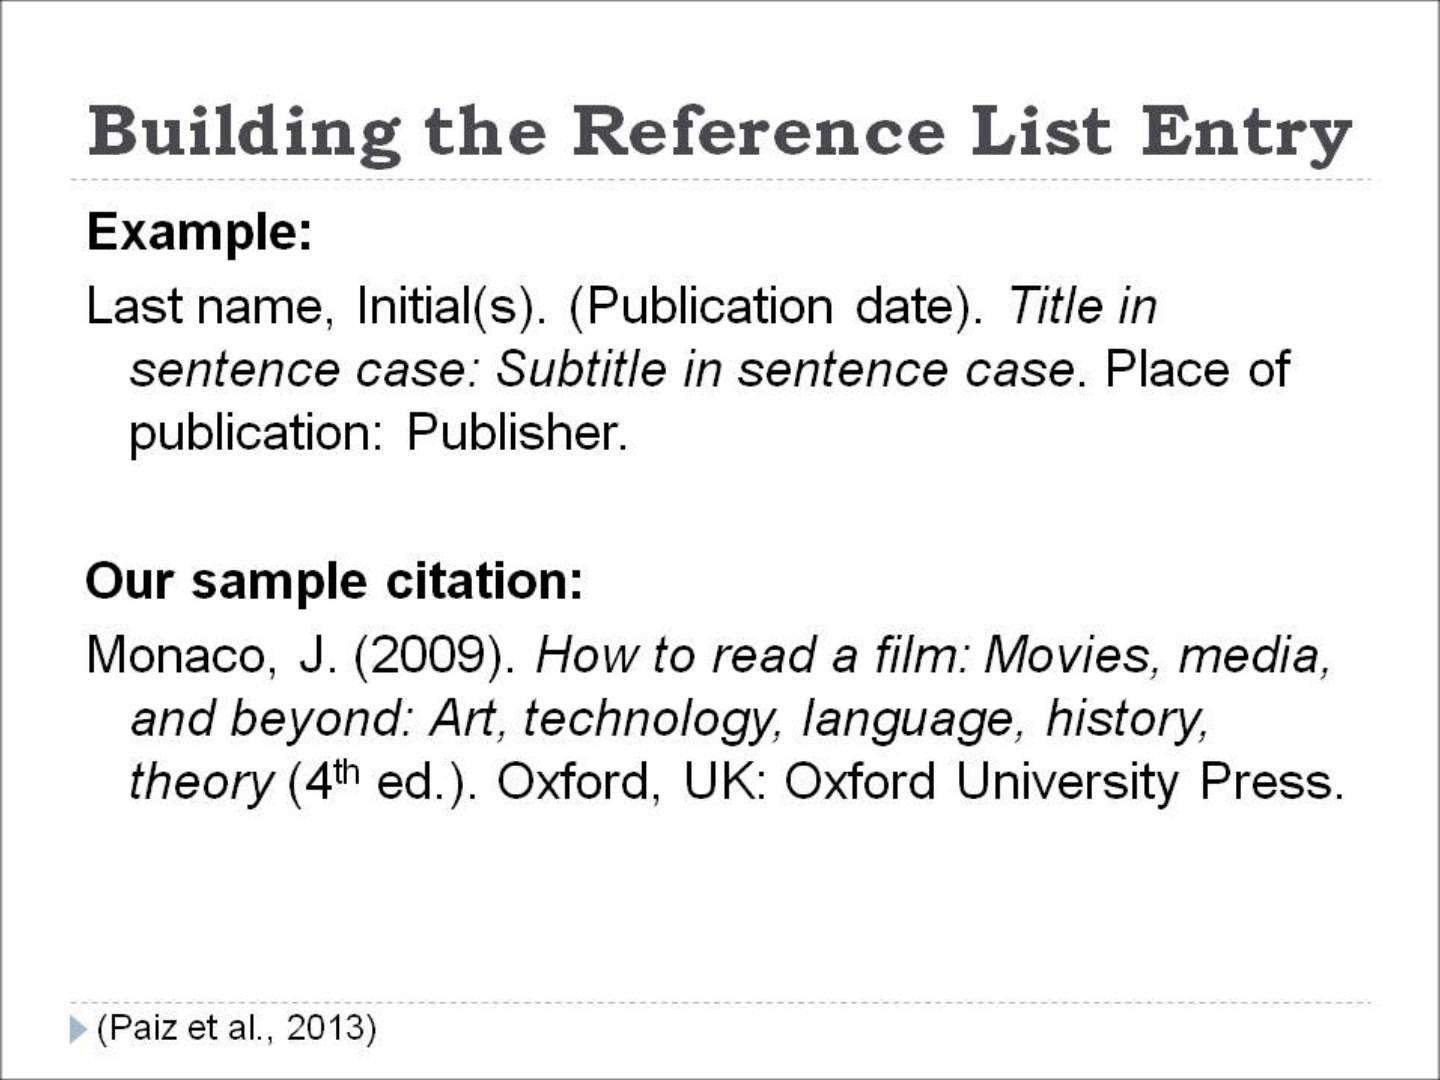 apa citation style examples Apa citation style: examples based on the publication manual of the american psychological association, 5th edition, csb & sju reference bf 767 p83 2001.